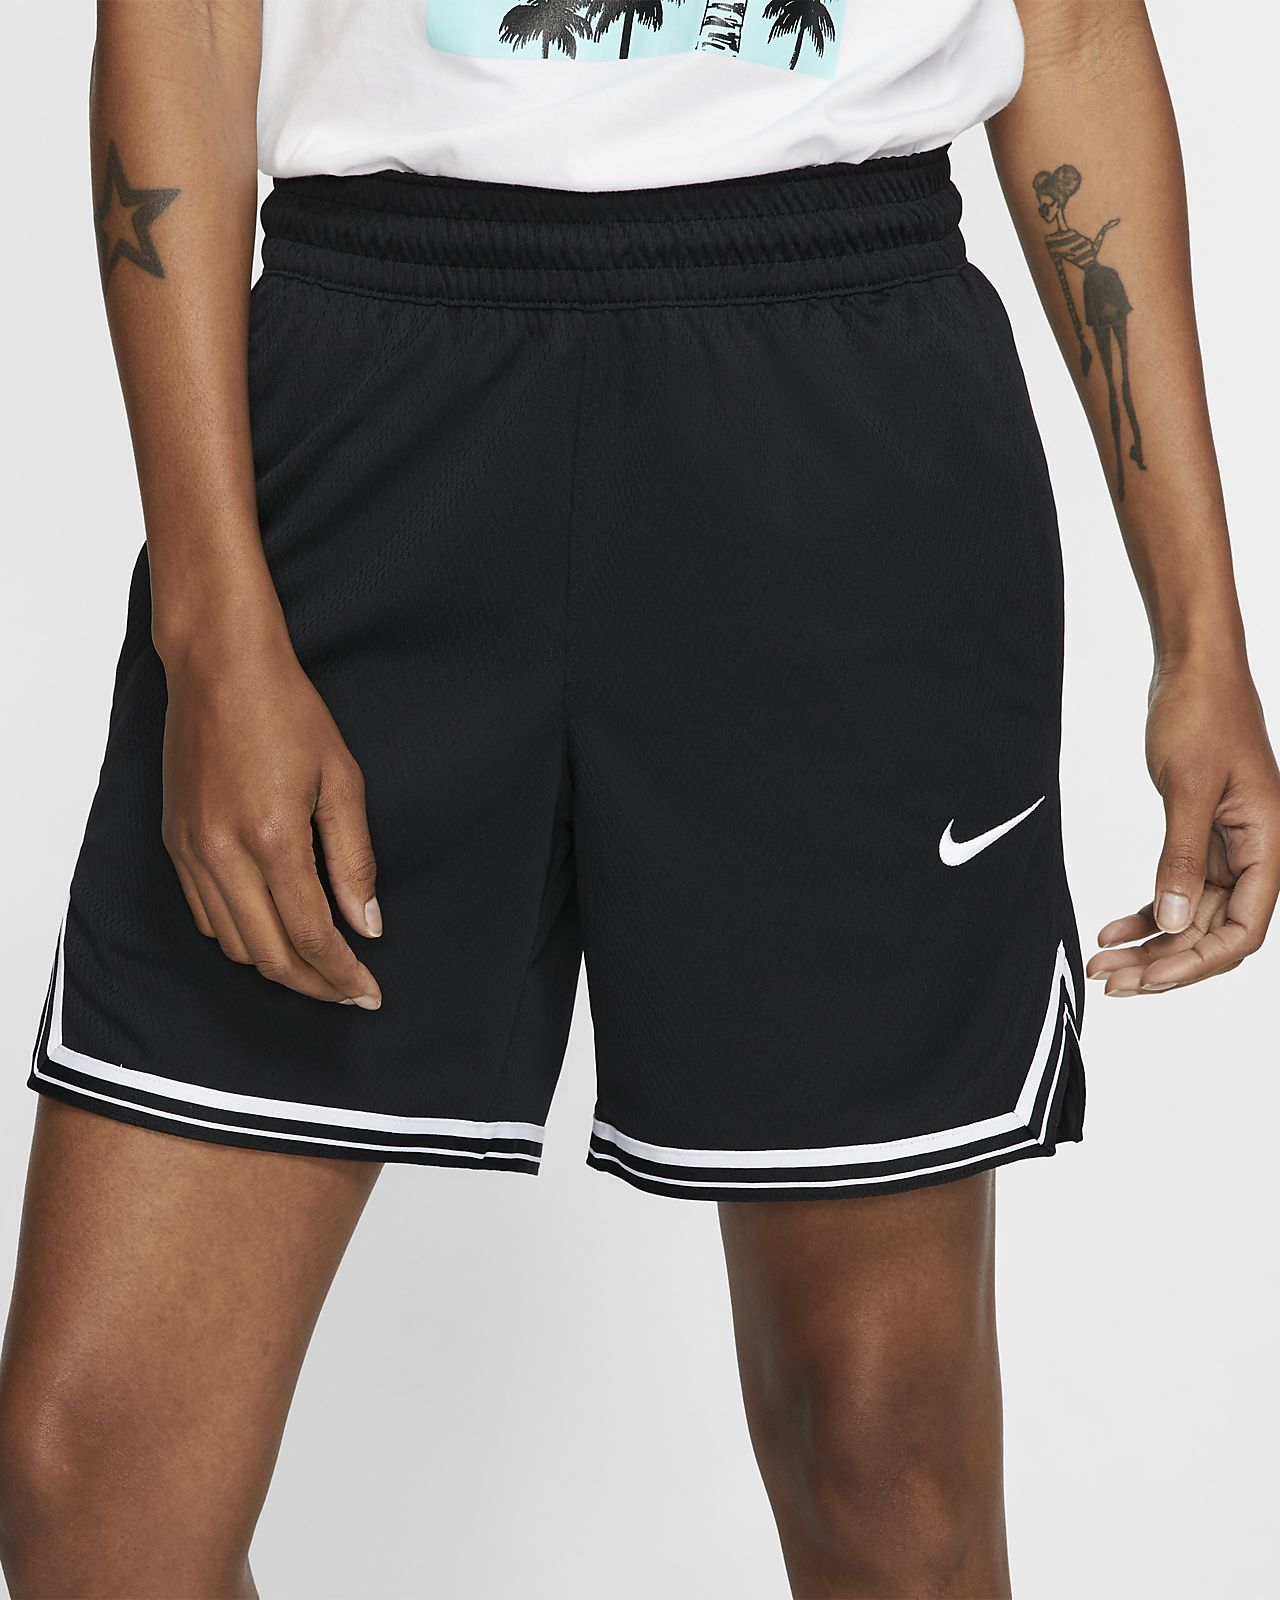 75e6ec19b5 Low Resolution Nike Women's Basketball Shorts Nike Women's Basketball Shorts